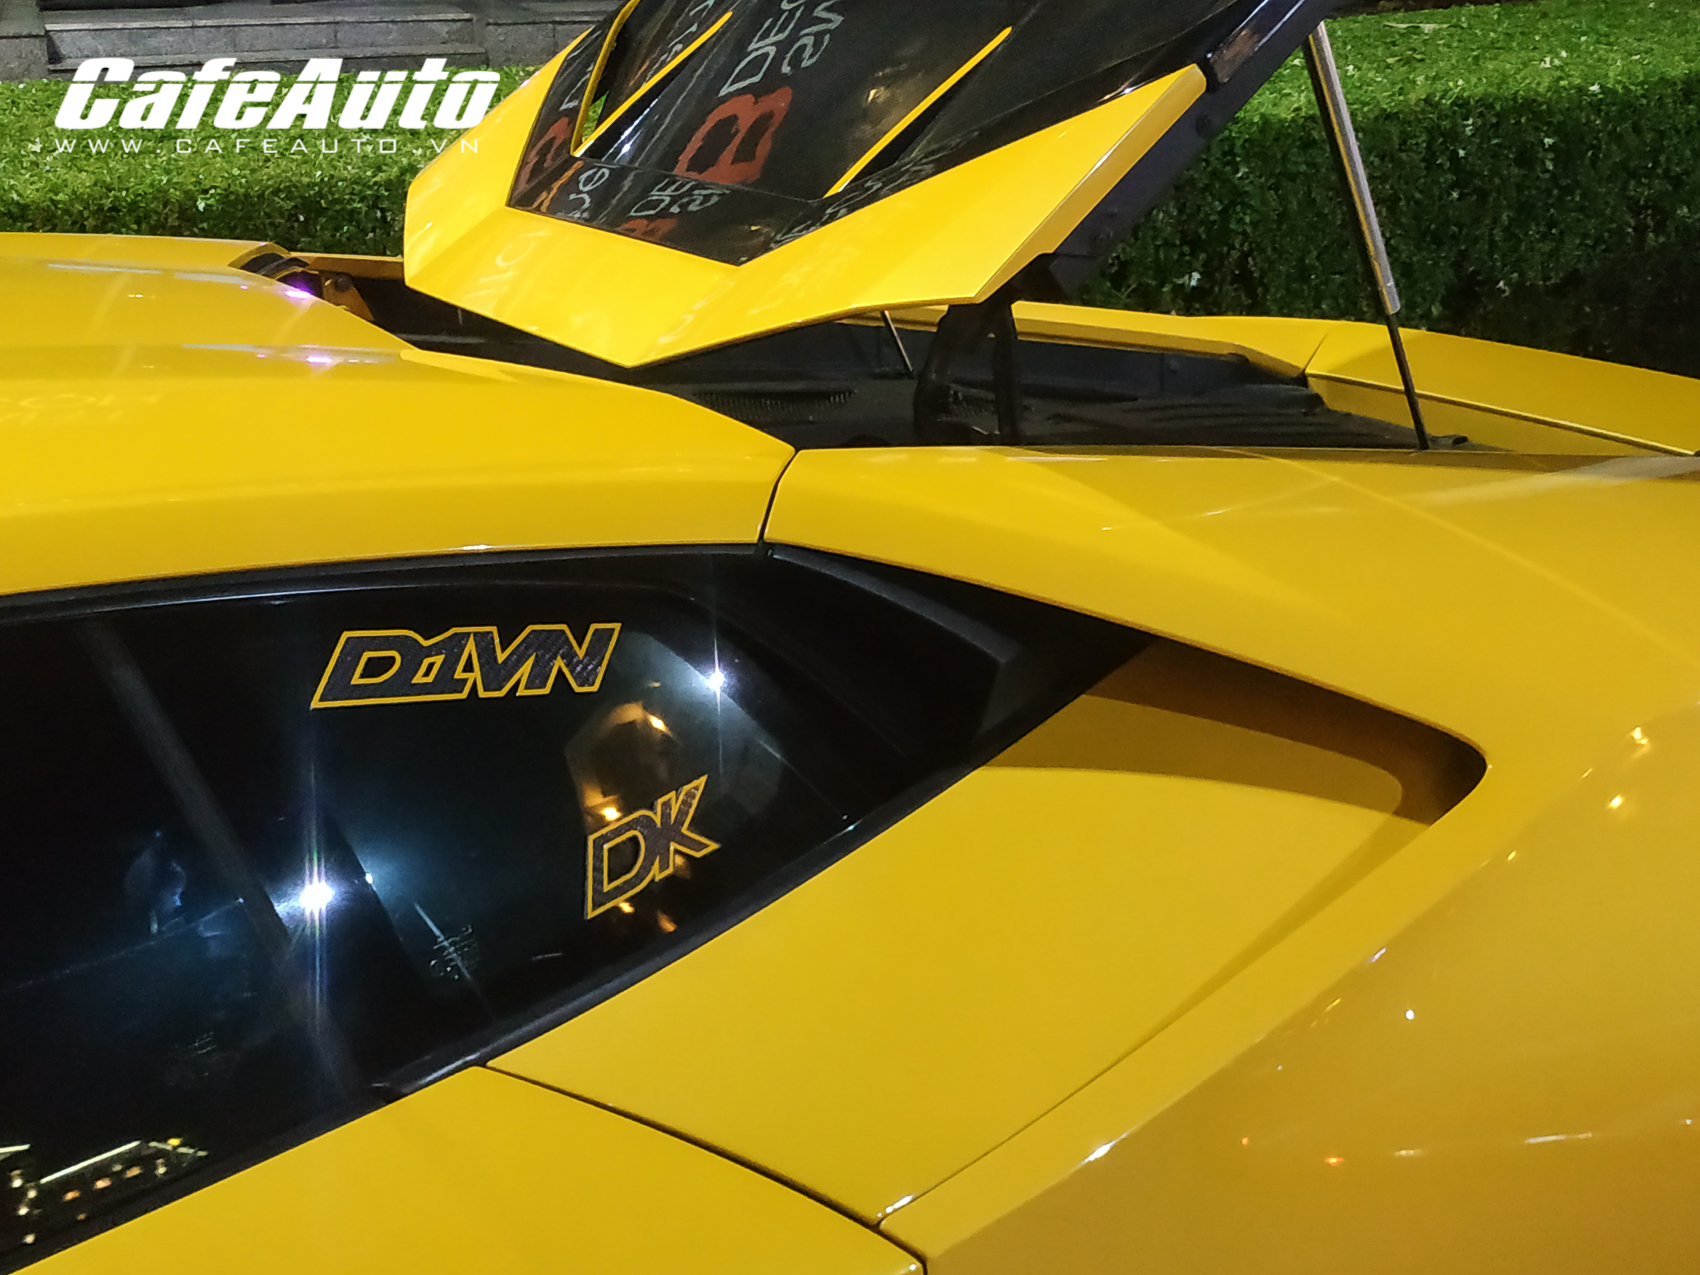 huracanmansory-cafeautovn-20